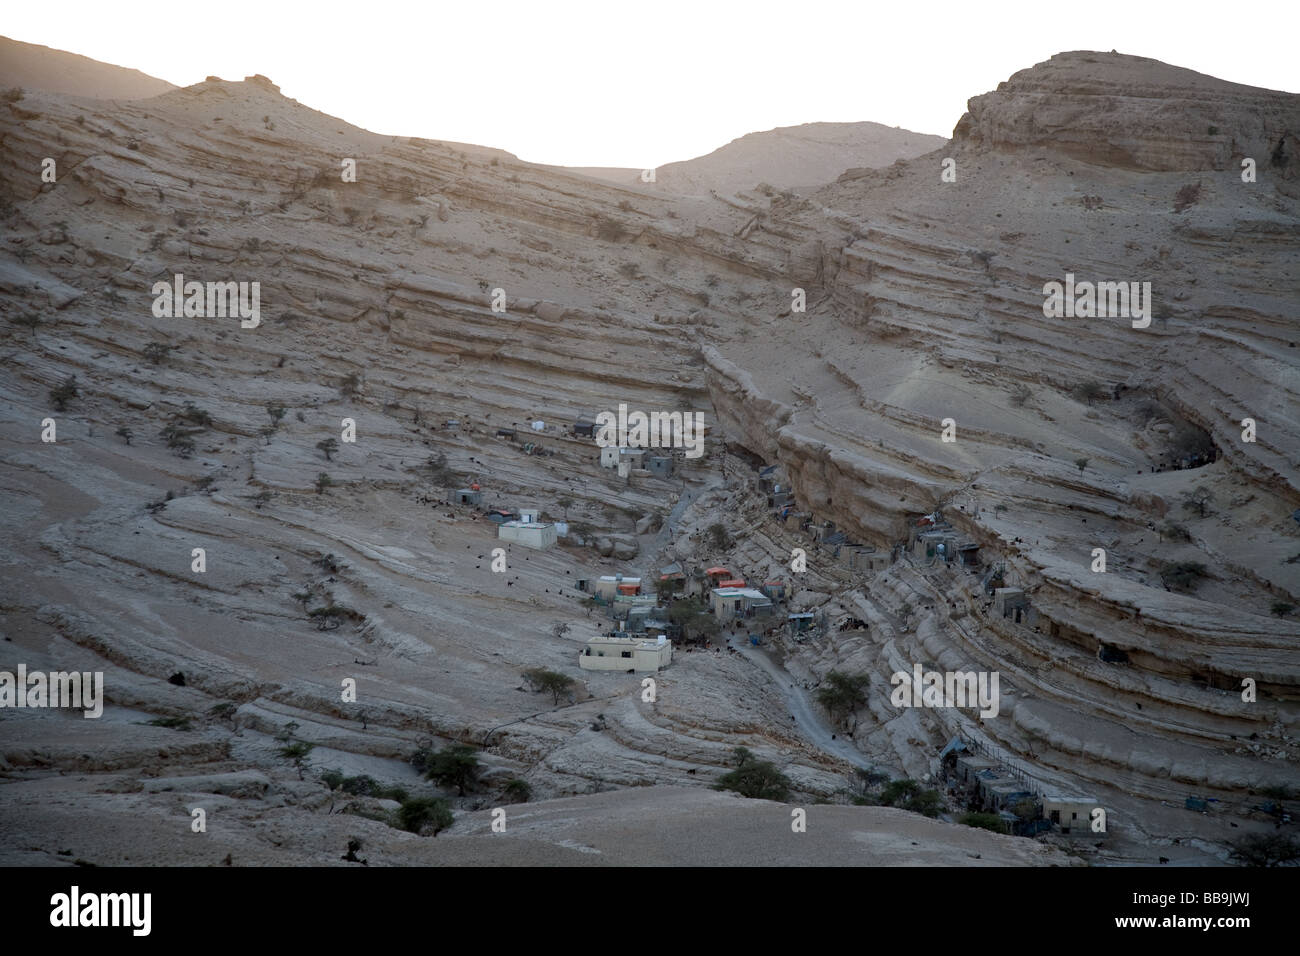 Qoran, a small remote village with few houses inside the karst formation of the Selmeh Selma Salmah Plateau - Stock Image